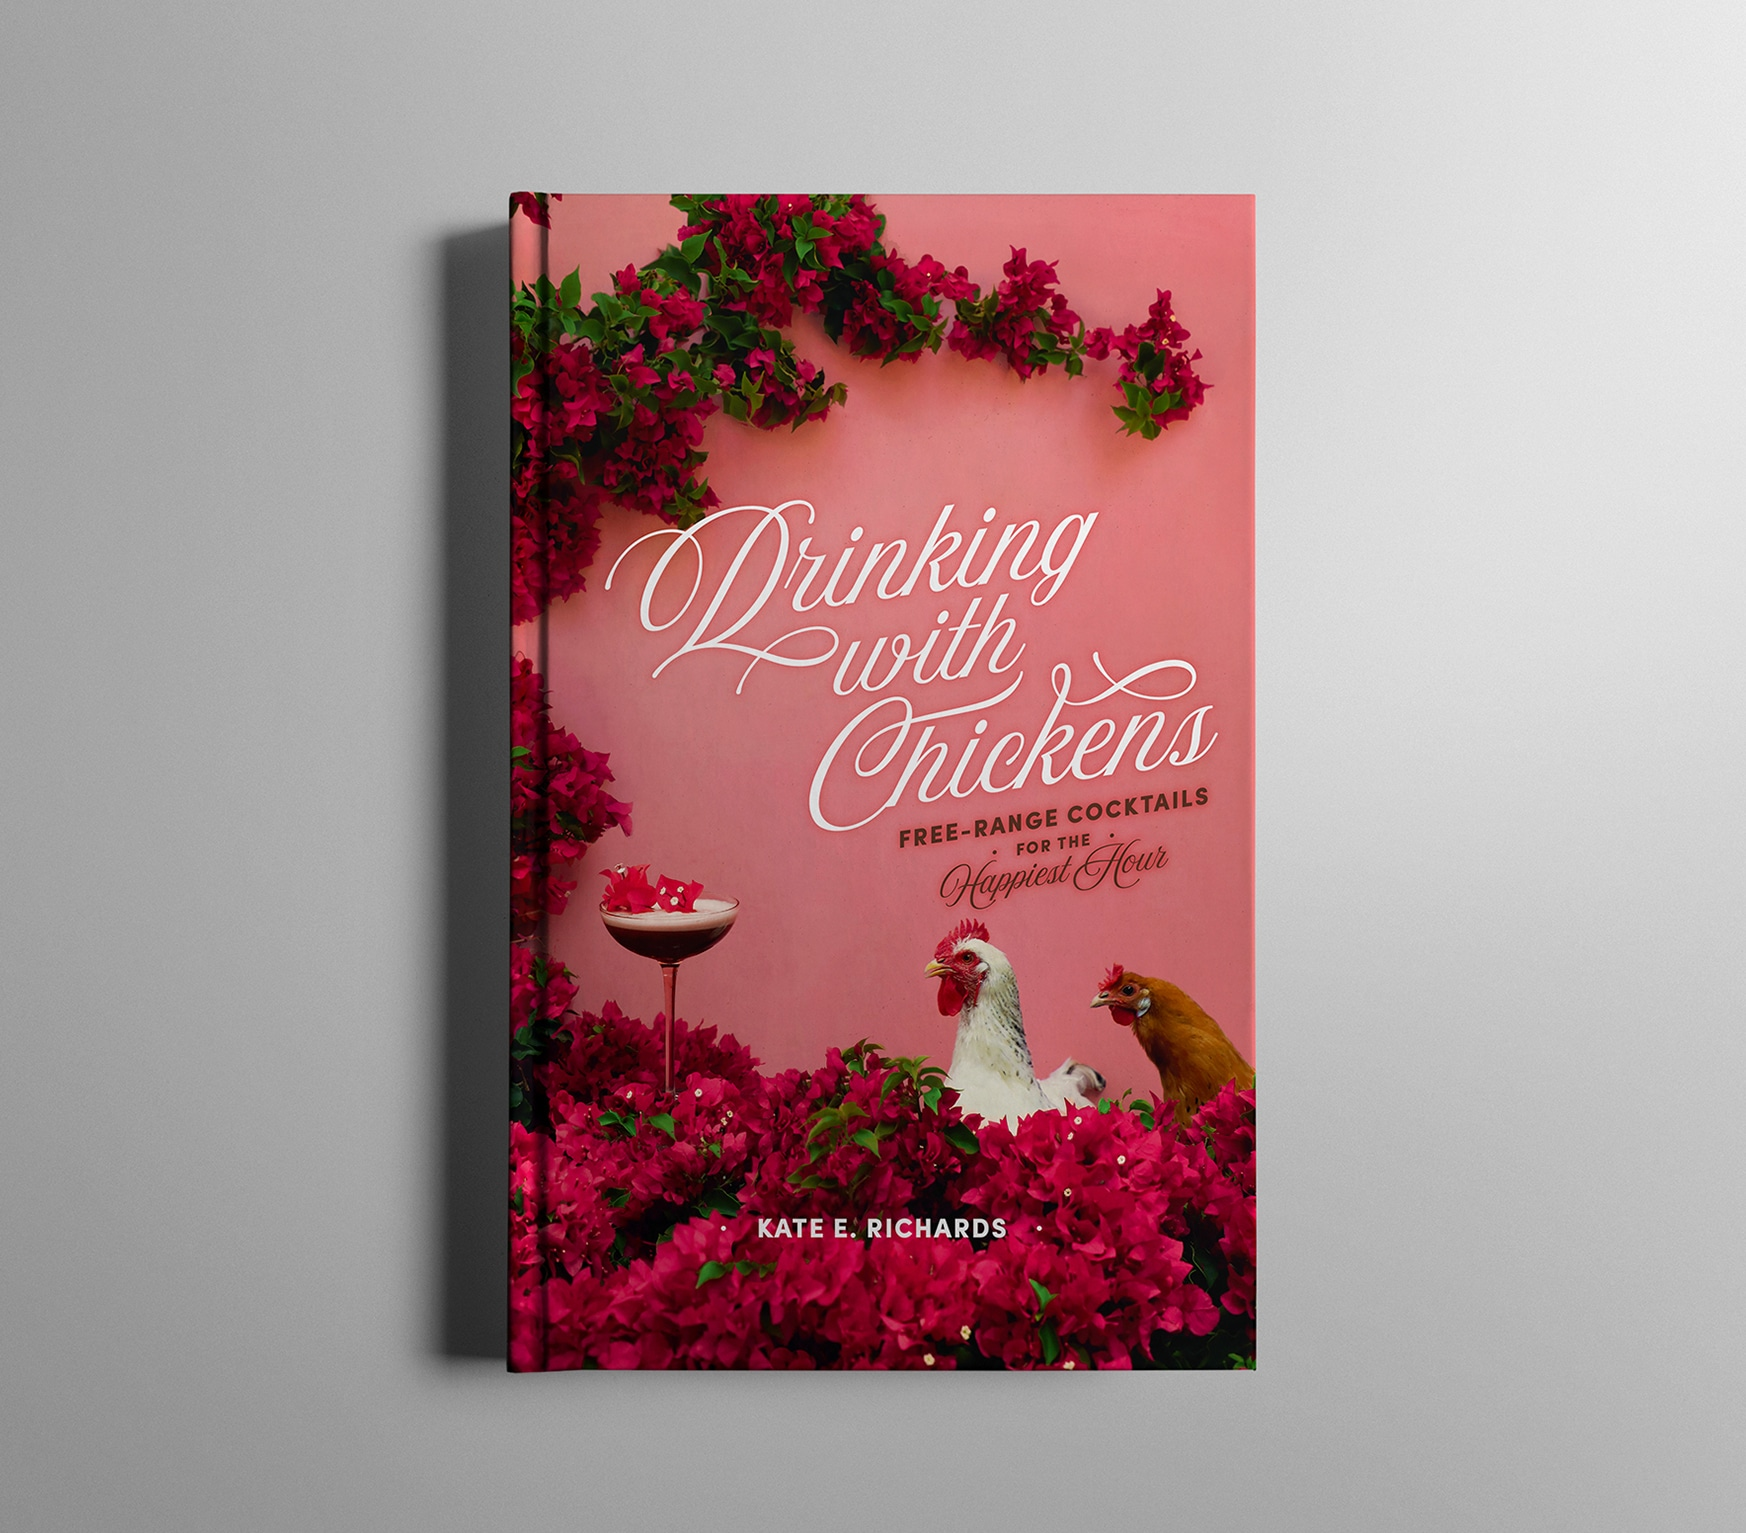 drinkingwithchickens_thumb